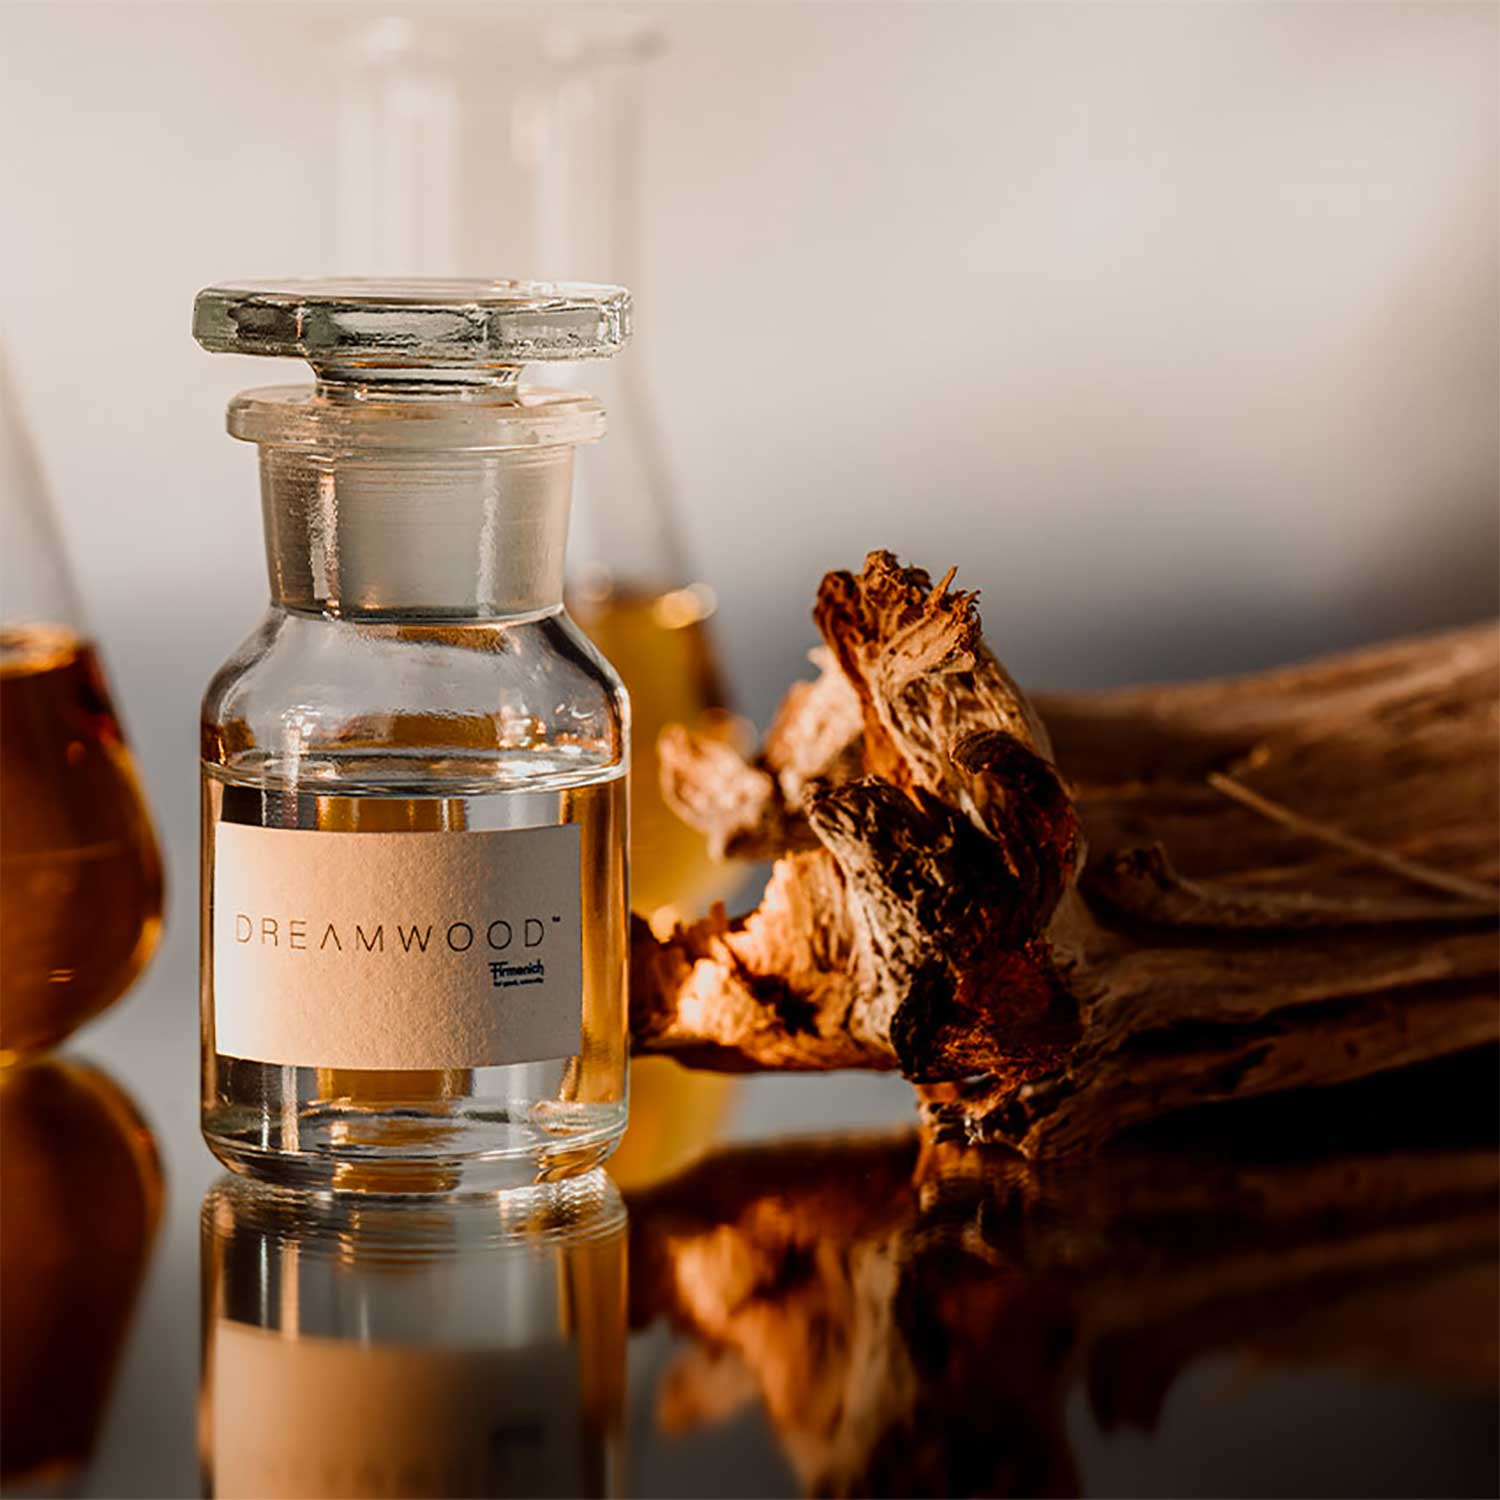 Dreamwood – the woody scent that dreams are made of